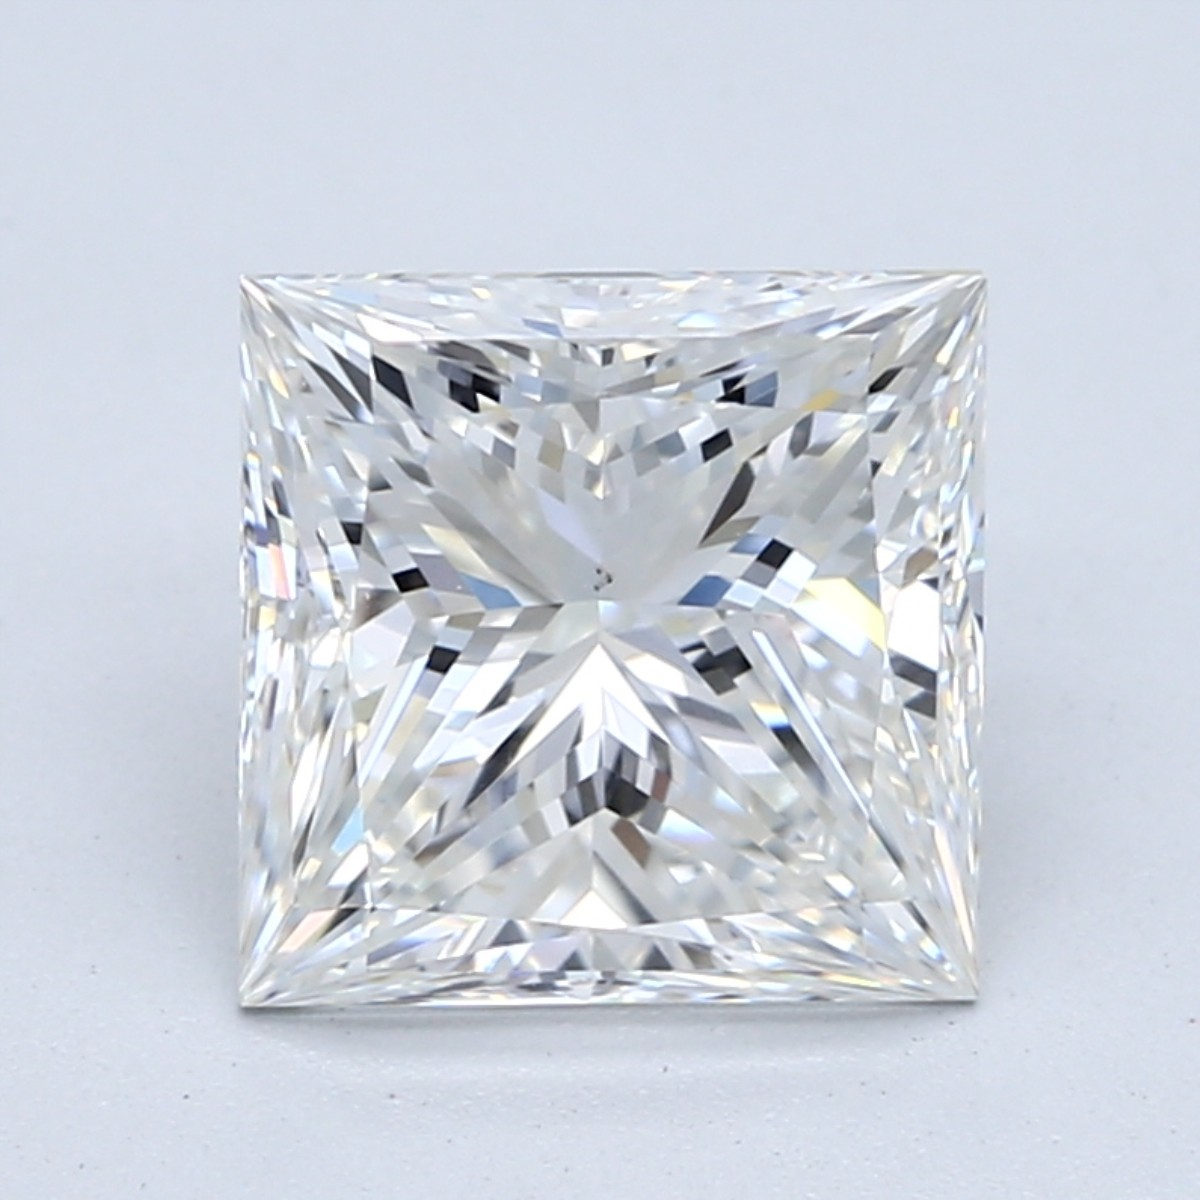 2.5 carat G color princess cut diamond